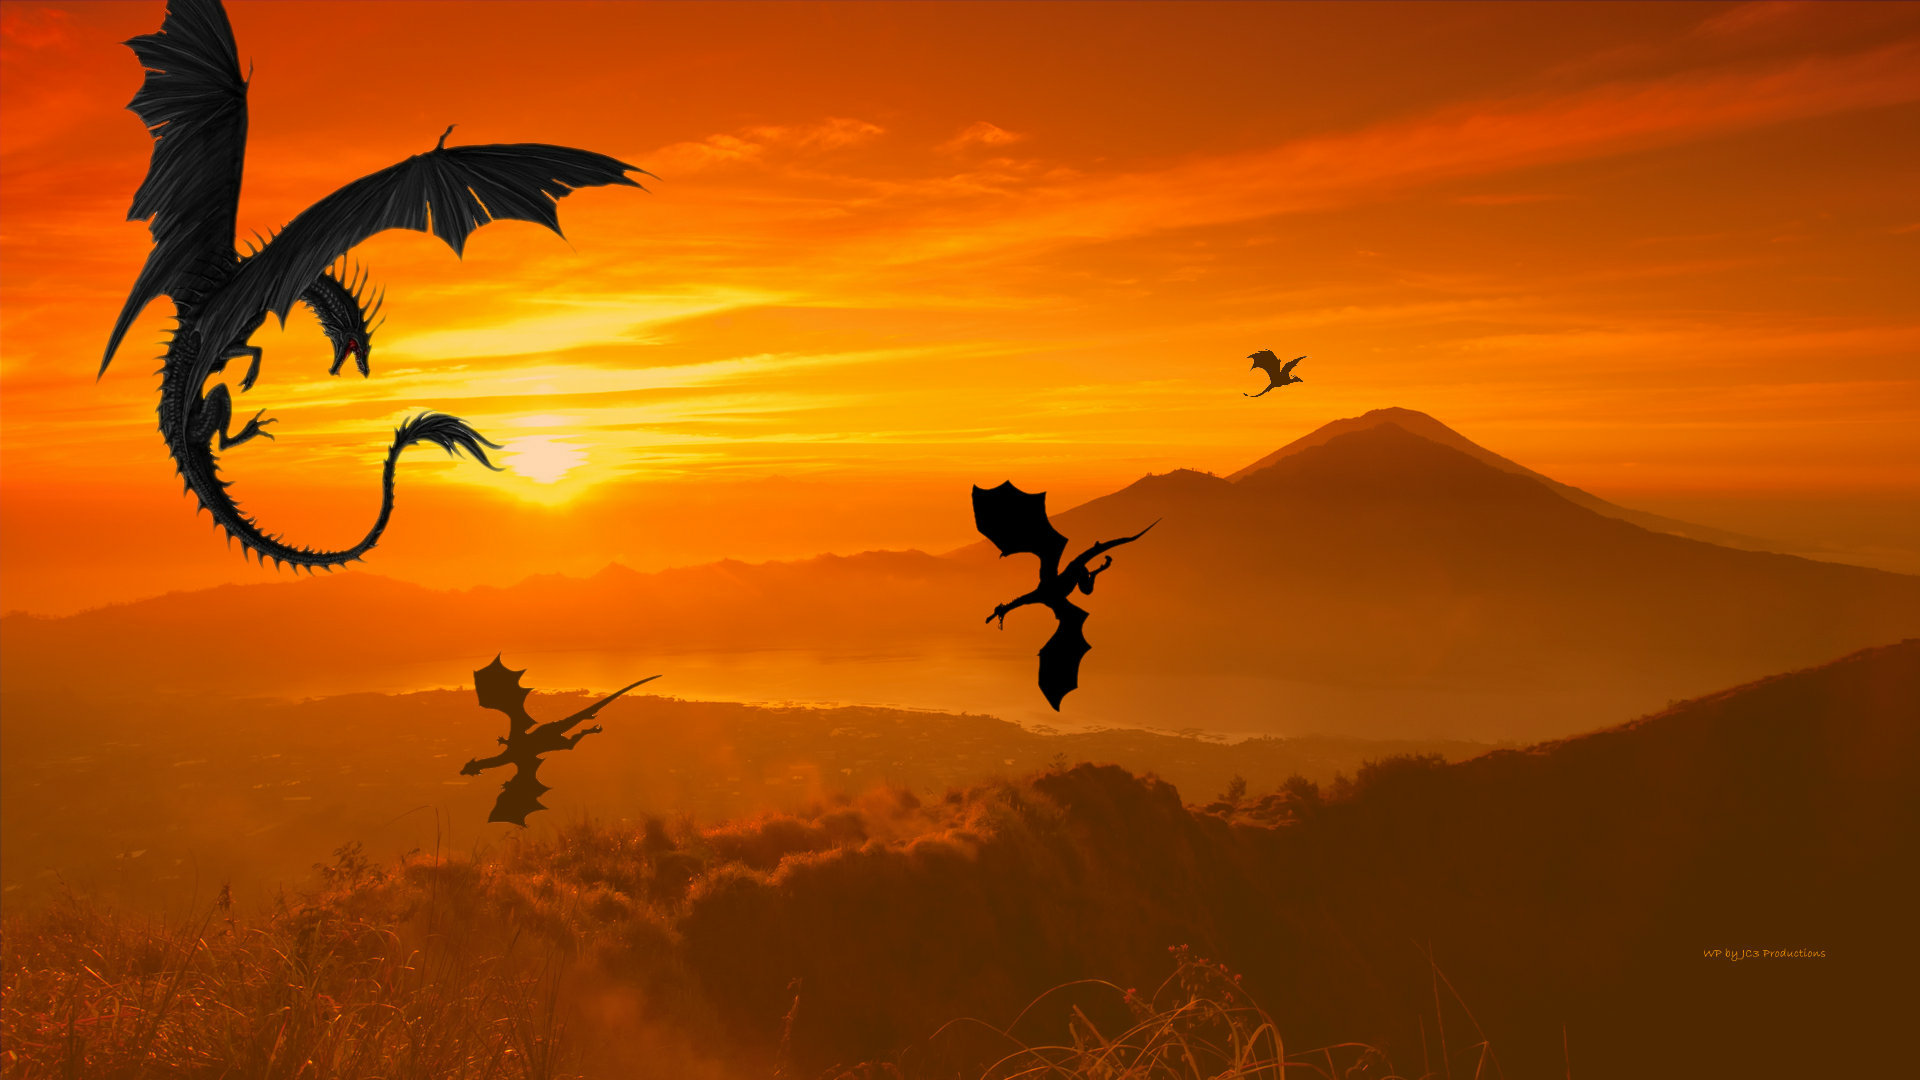 Dragons in Sunset 1